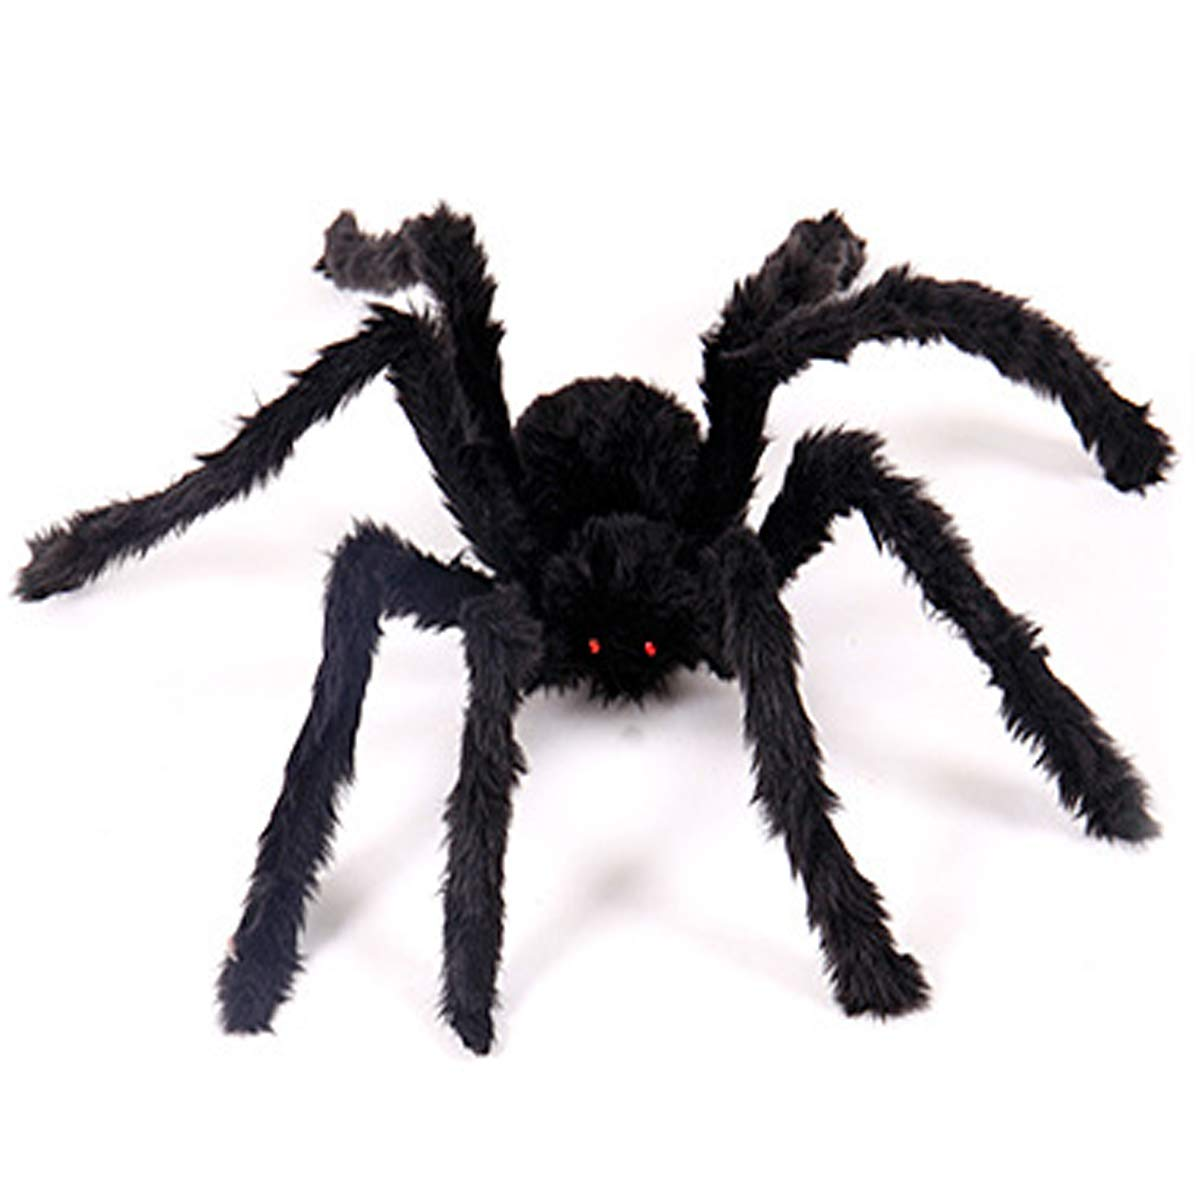 Aunavey Four Size Halloween Realistic Hairy Spiders, Valuable Halloween Props, for Indoor and Outside Decorations (23.6'', Black)